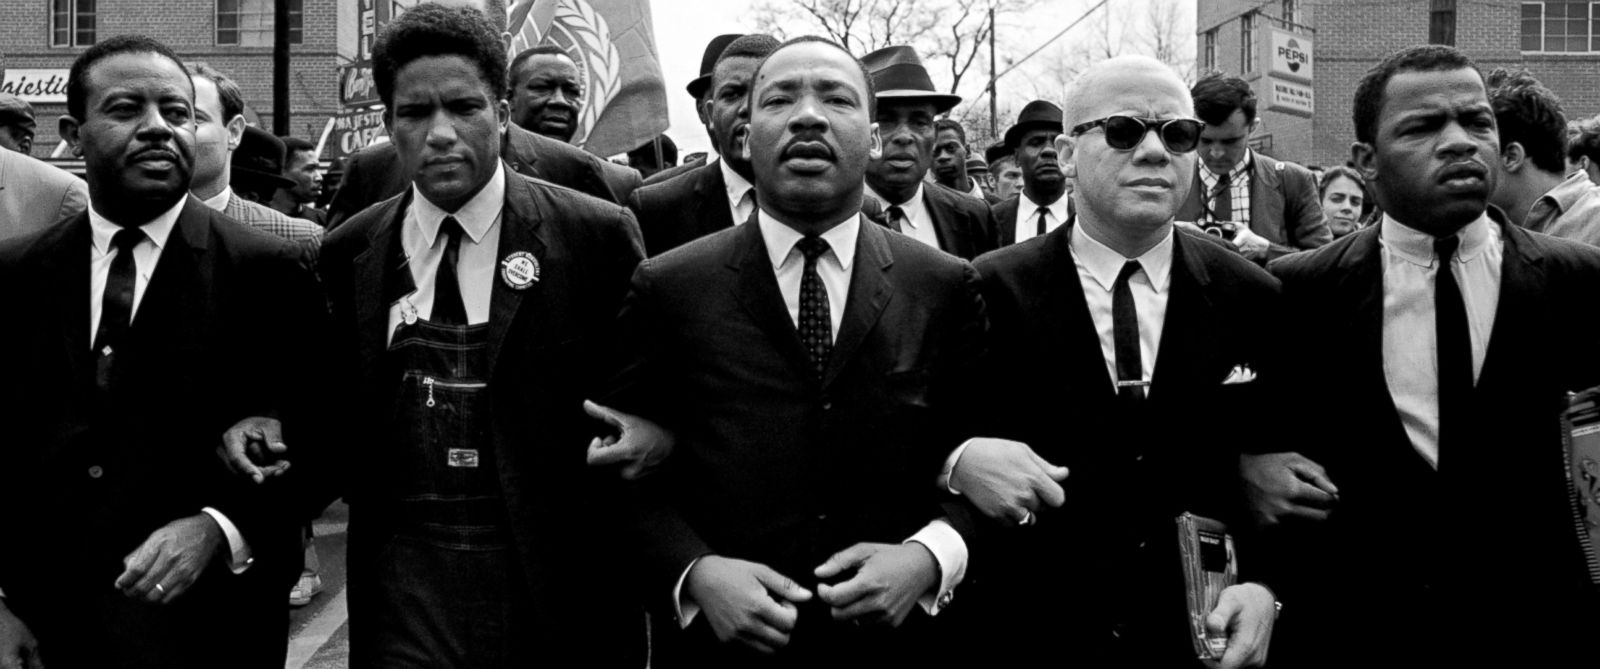 the civil rights movement martin luther The biography of martin luther king jr, the man who dedicated his life to the civil rights movement in the united states, including what his philosophy was, what he.